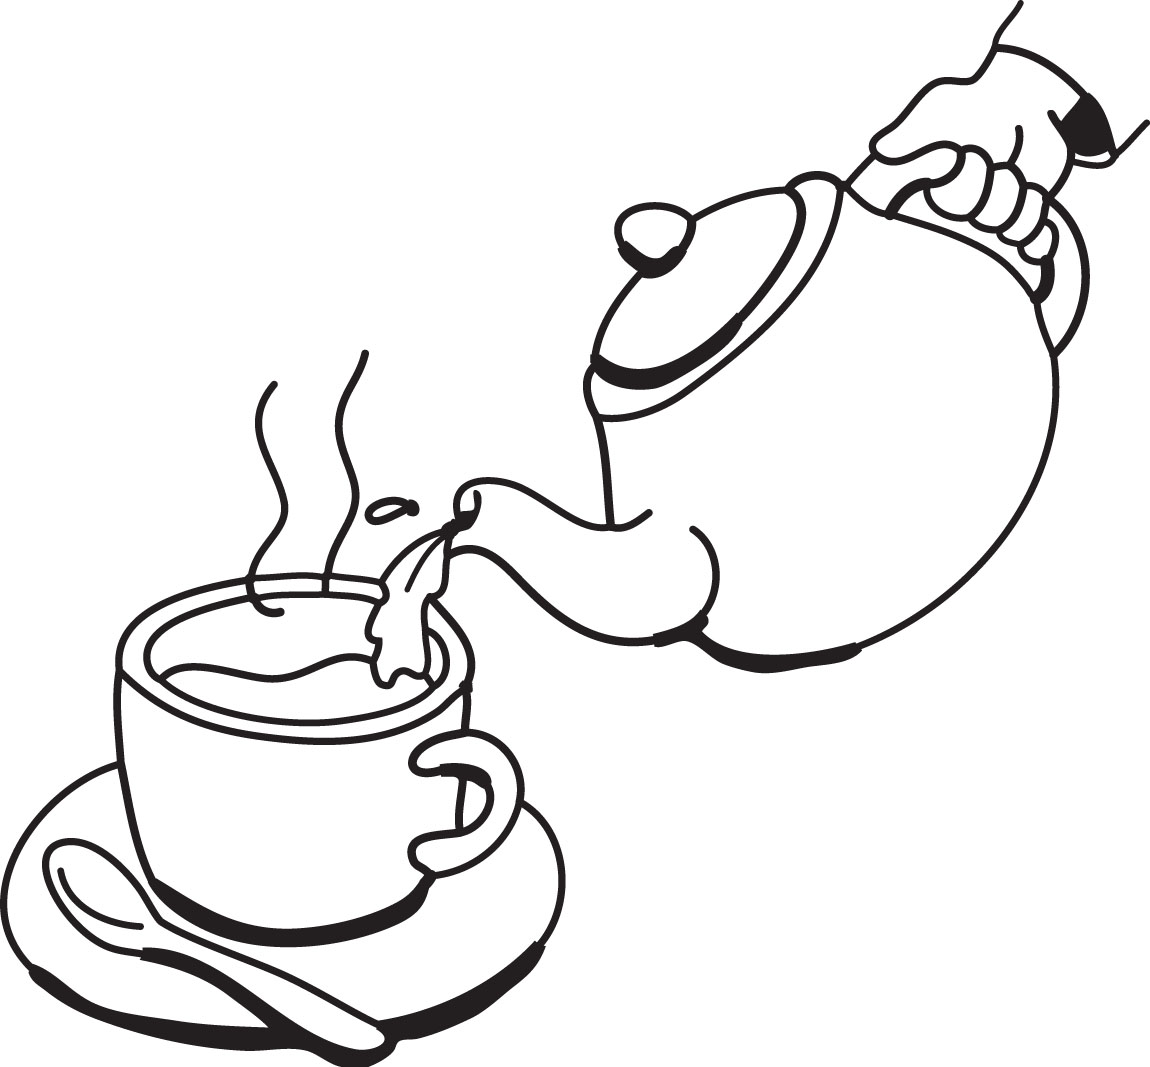 Free Tea Party Clipart Black And White, Download Free Clip.